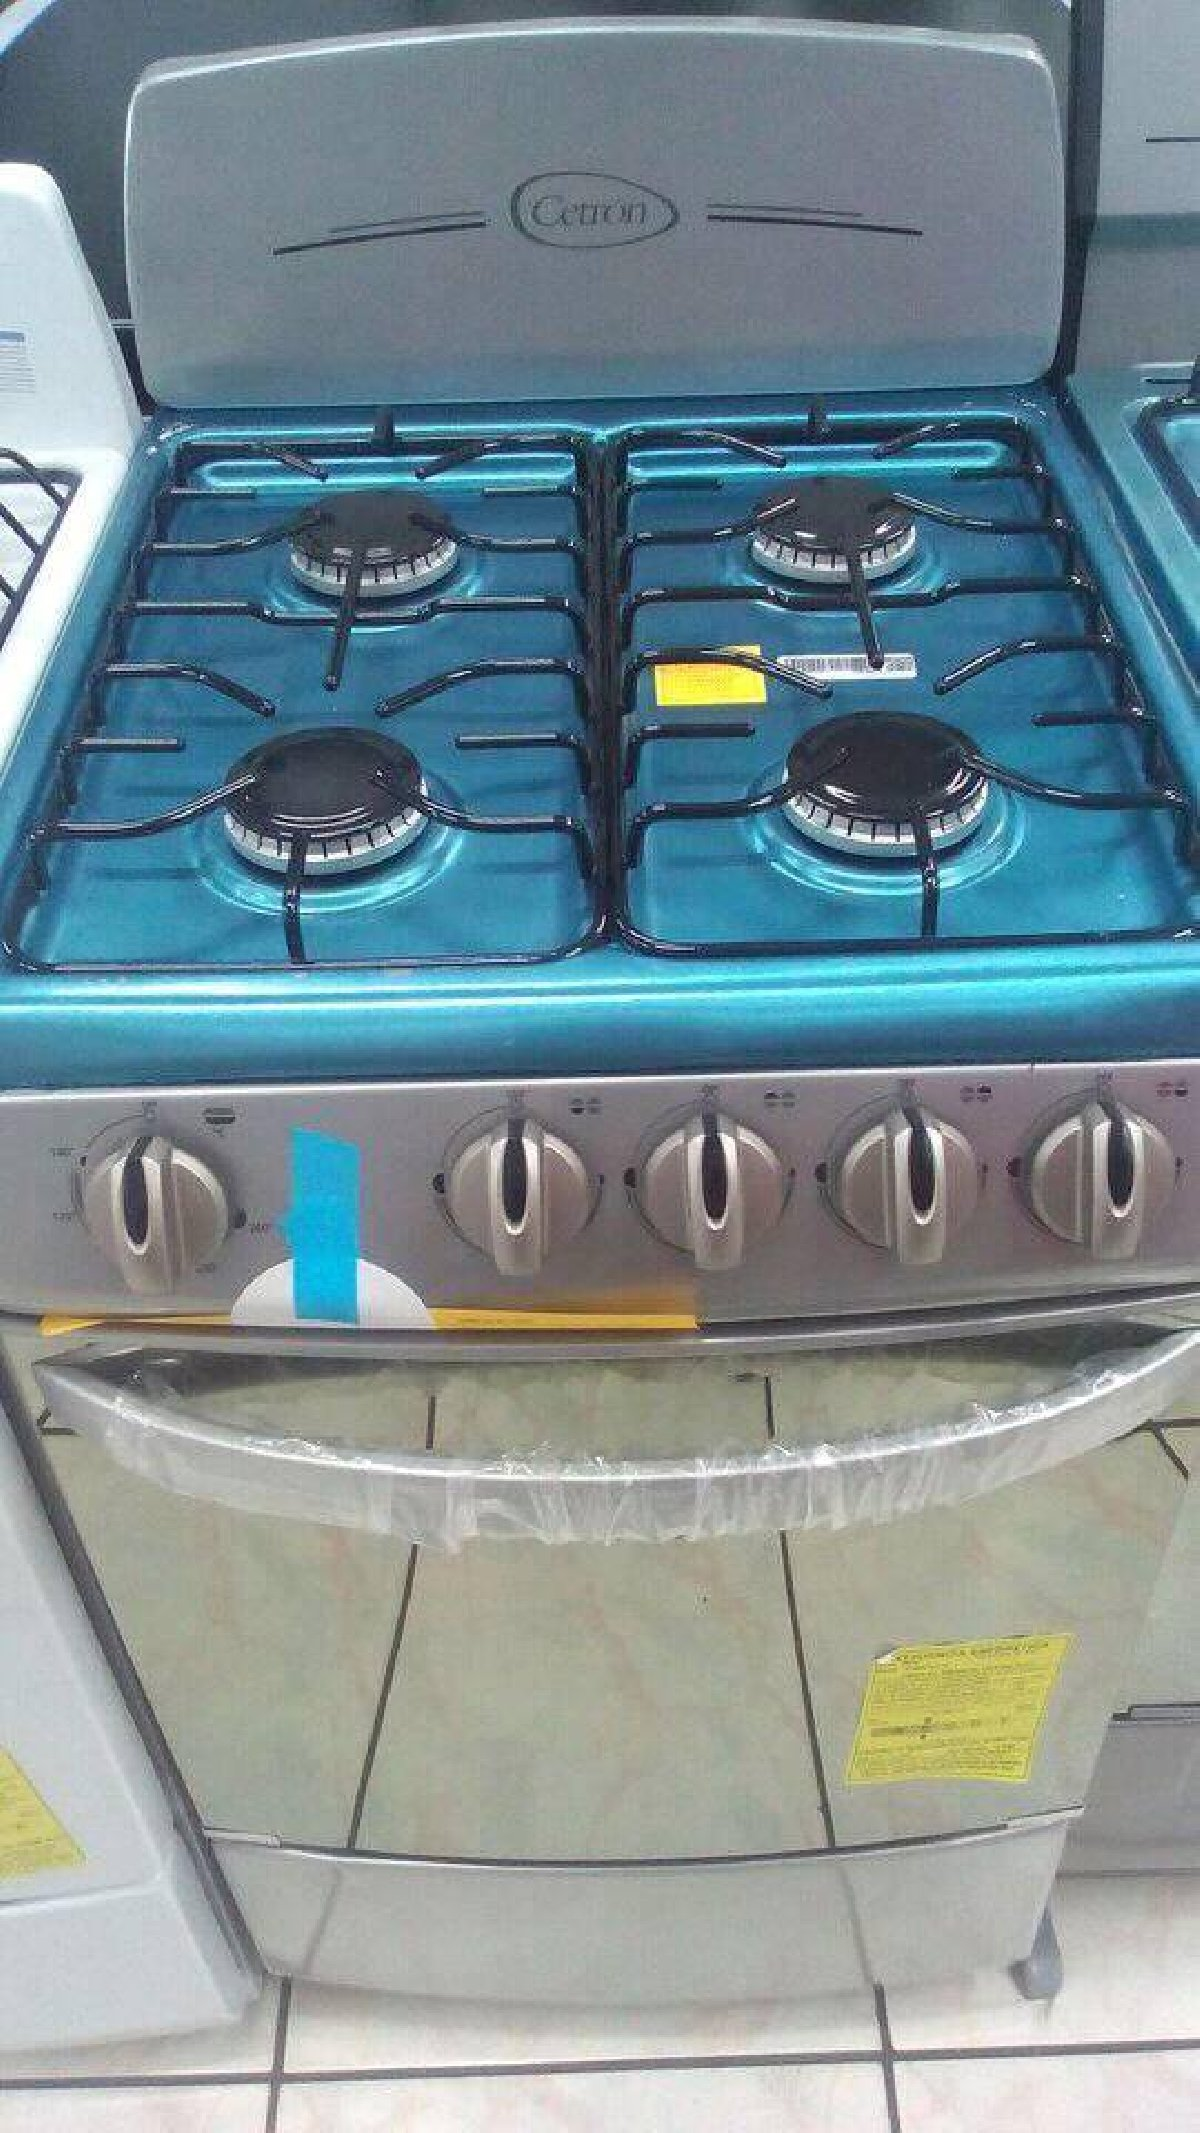 Cetron Four Burner Stoves For Sale in Half Way Tree Kingston St ...